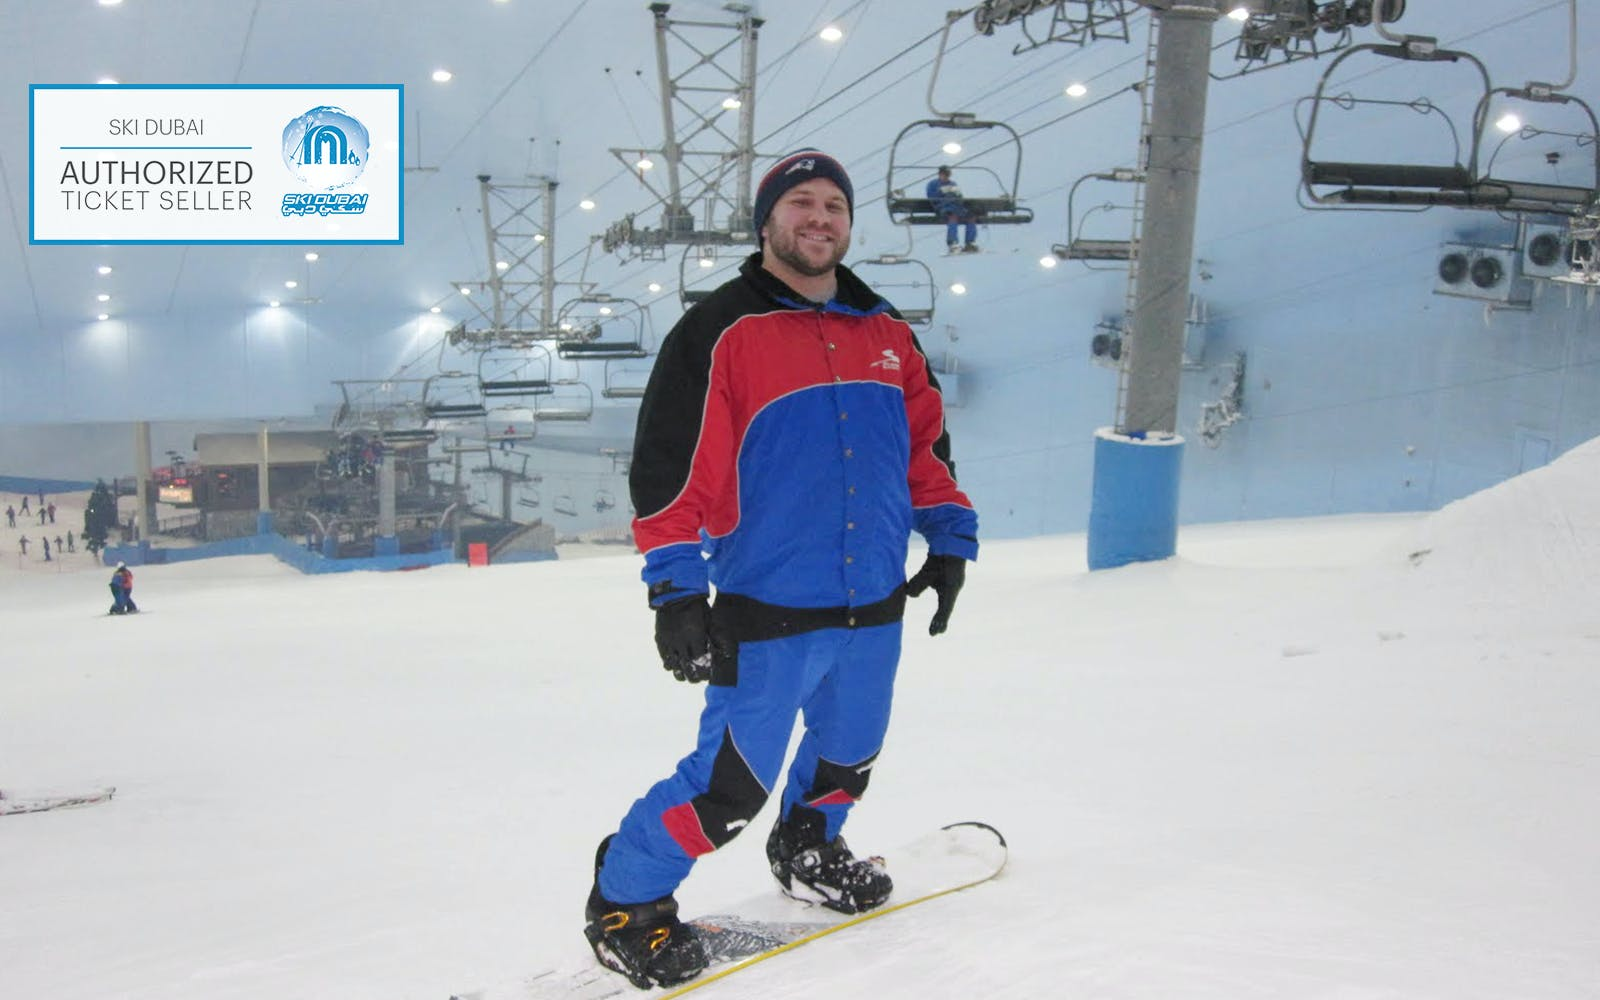 ski dubai: 2 hour snowboarding session-2